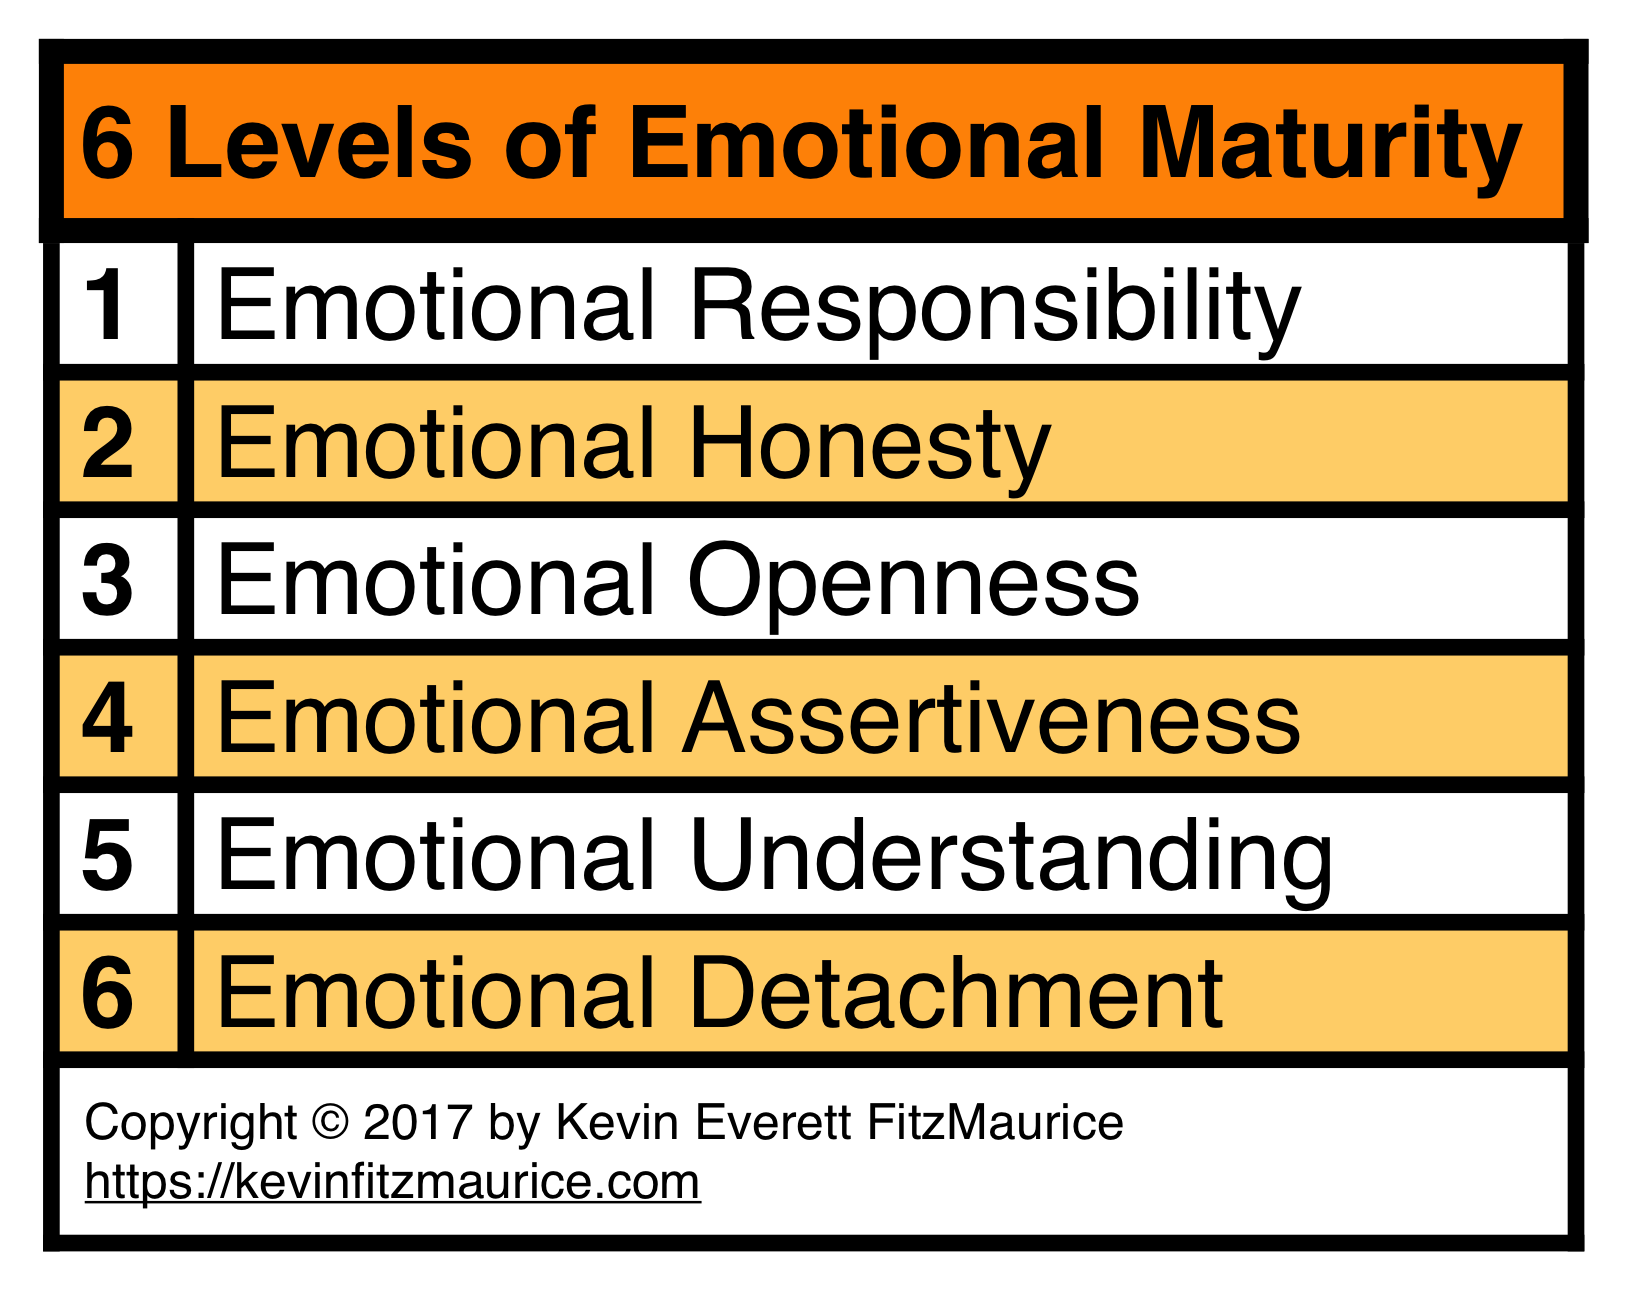 Maybe I am finally approaching full emotional maturity? Ok, probably not, but I can at least see the path. Gotta start somewhere, right? :)